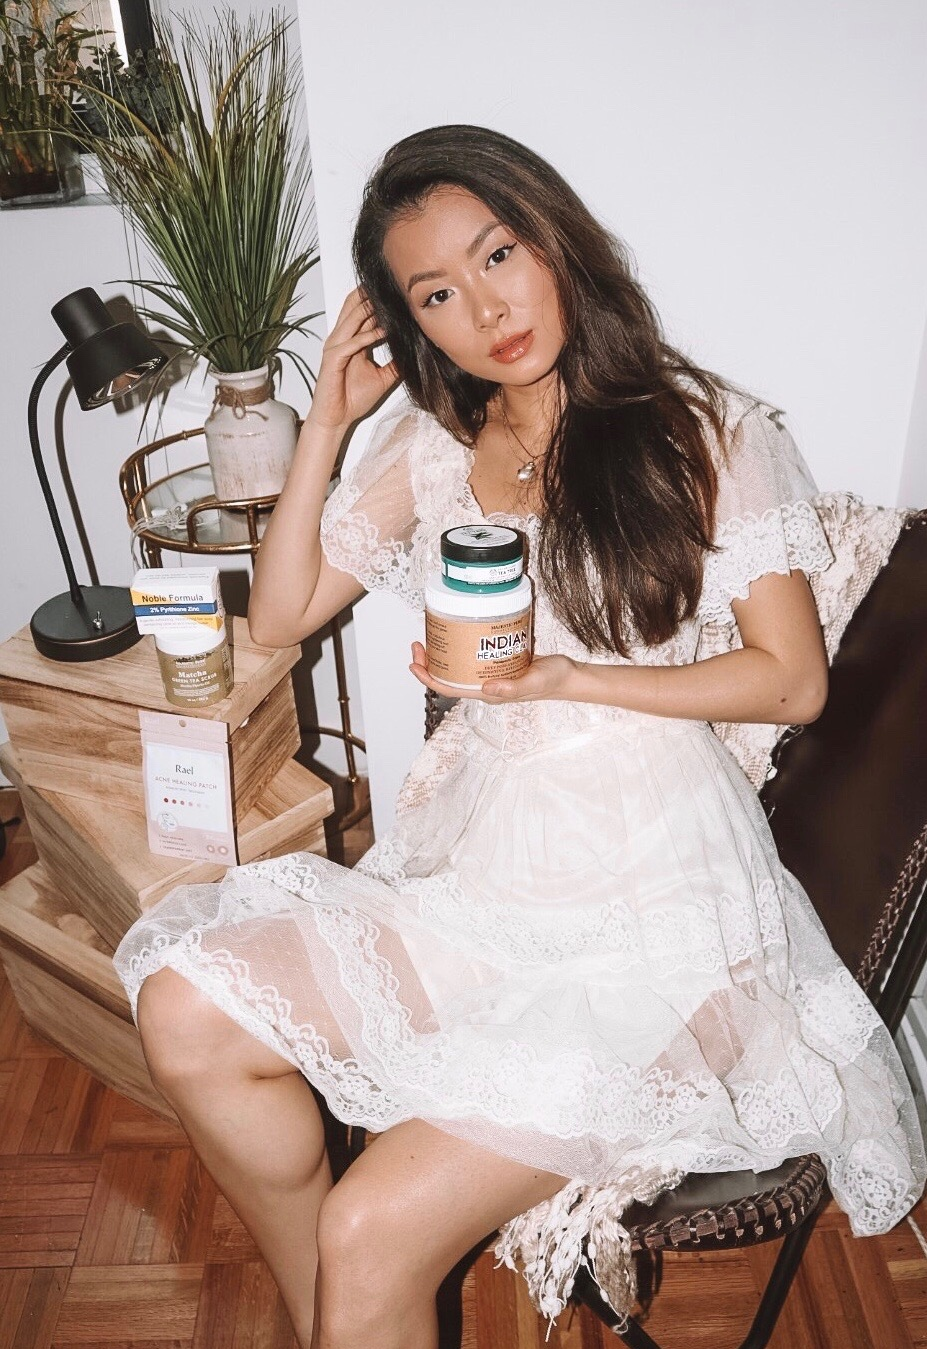 PRODUCTS PICTURED WITH MAE IN A CHAIR